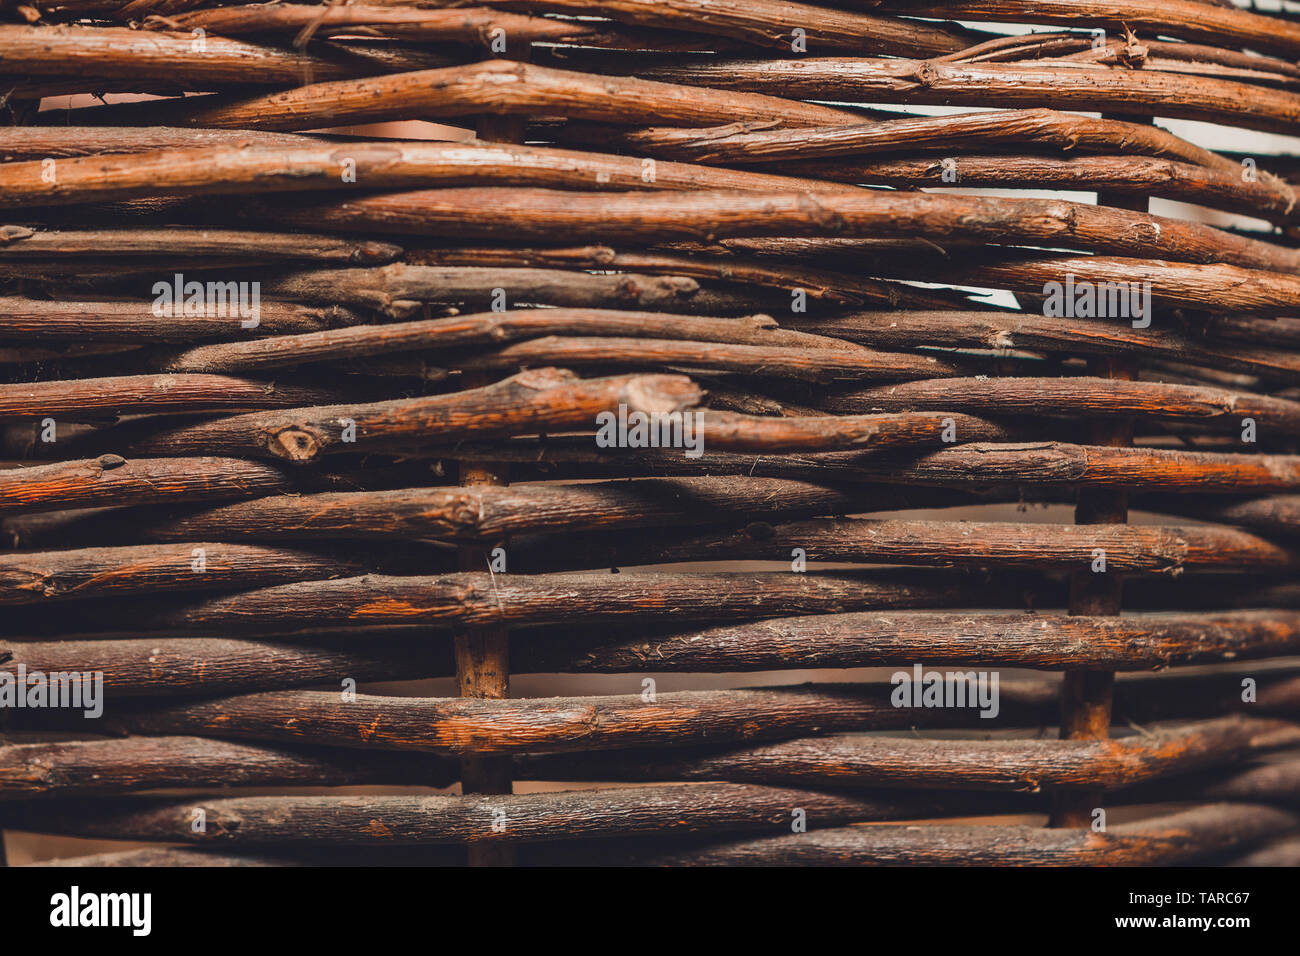 Organic woven willow wicker fence panel suitable for crafts, picnic or gardening background. 2019 - Stock Image